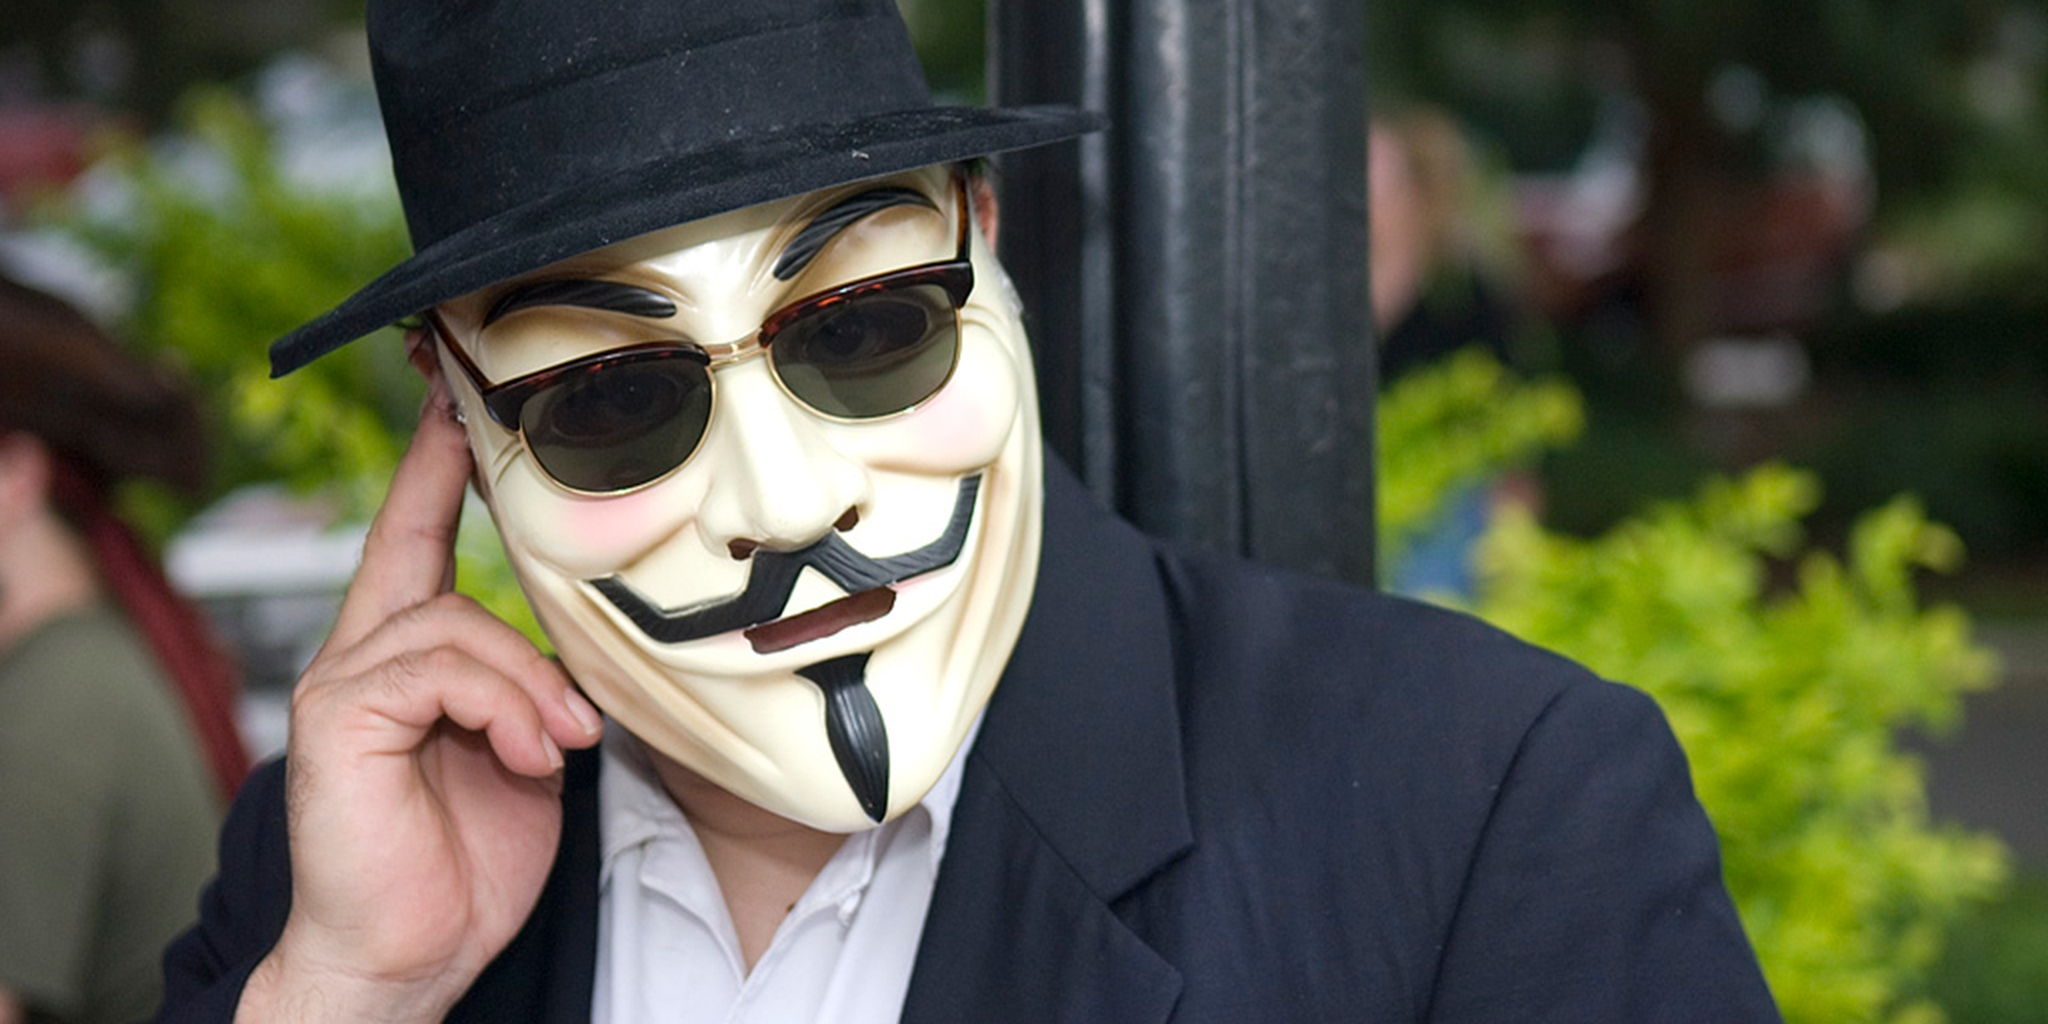 Man wearing Guy Fawkes mask with fingers up to ear